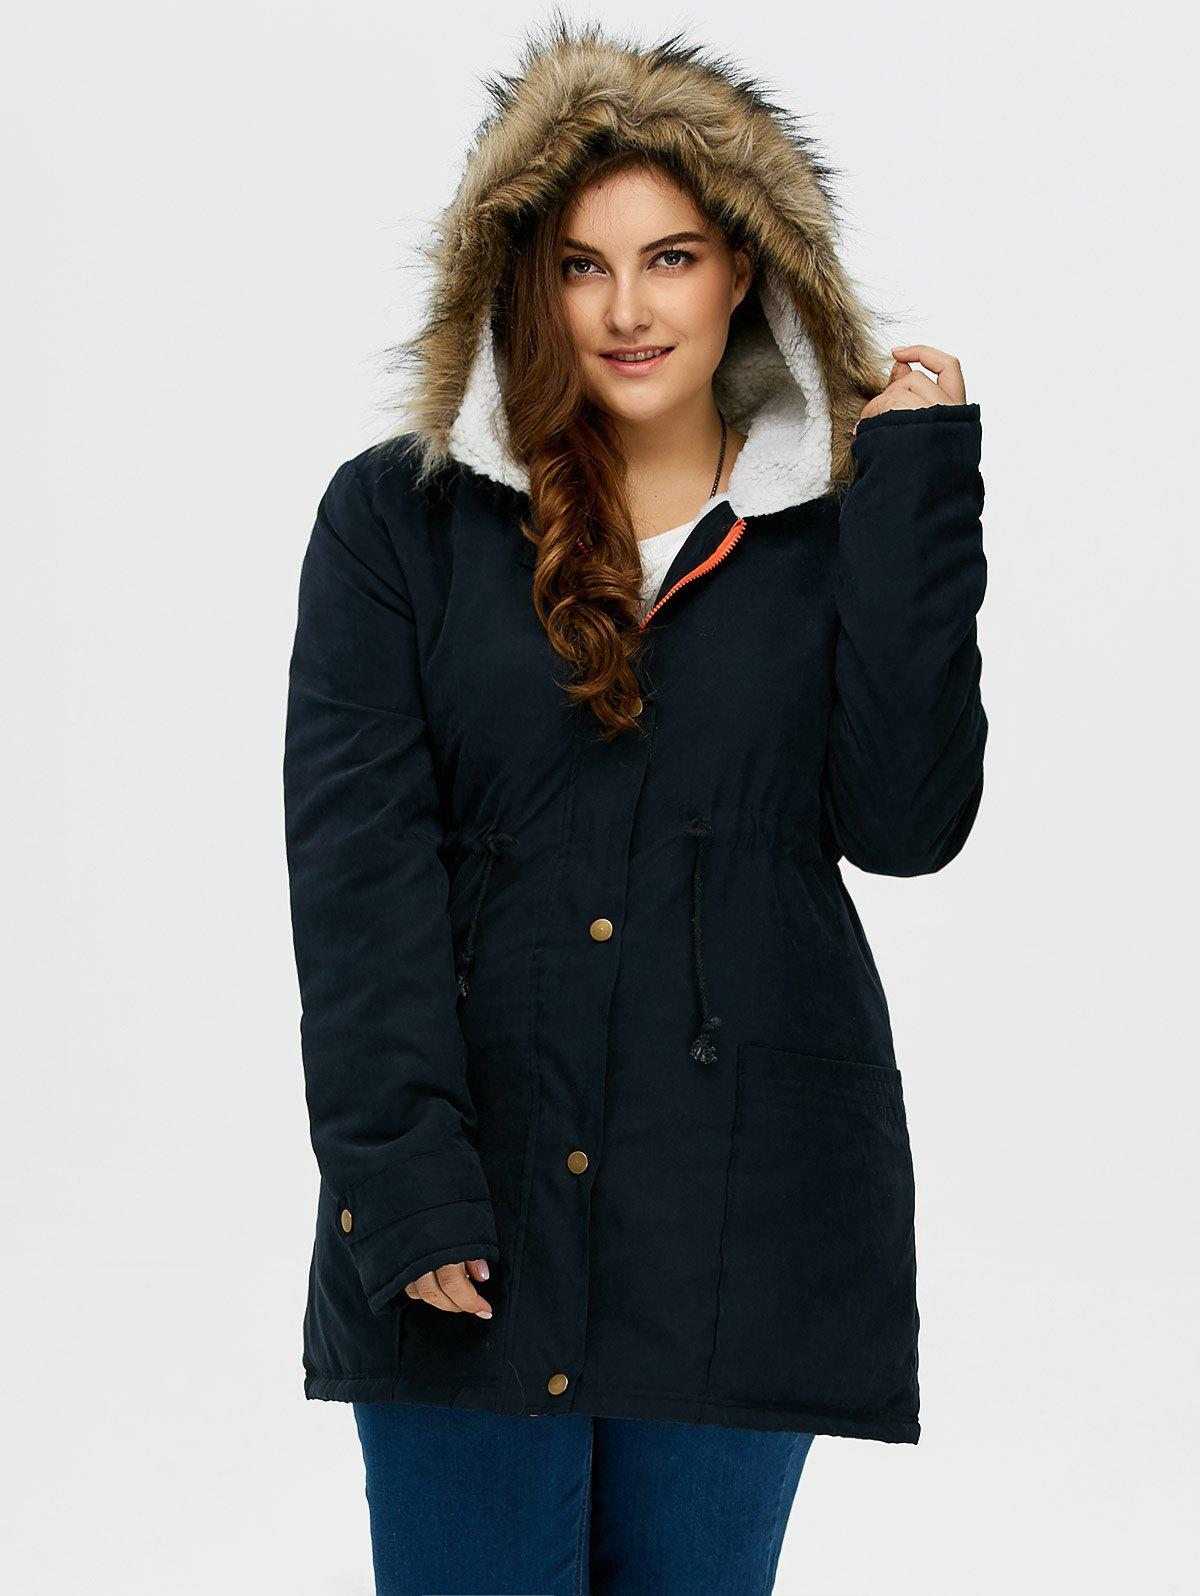 Plus Size Drawstring Hooded Parka Coat With Fur Collar plus size thick winter long jacket women coat fur hooded parka jaqueta feminina chaquetas mujer casacos de inverno feminino 1846